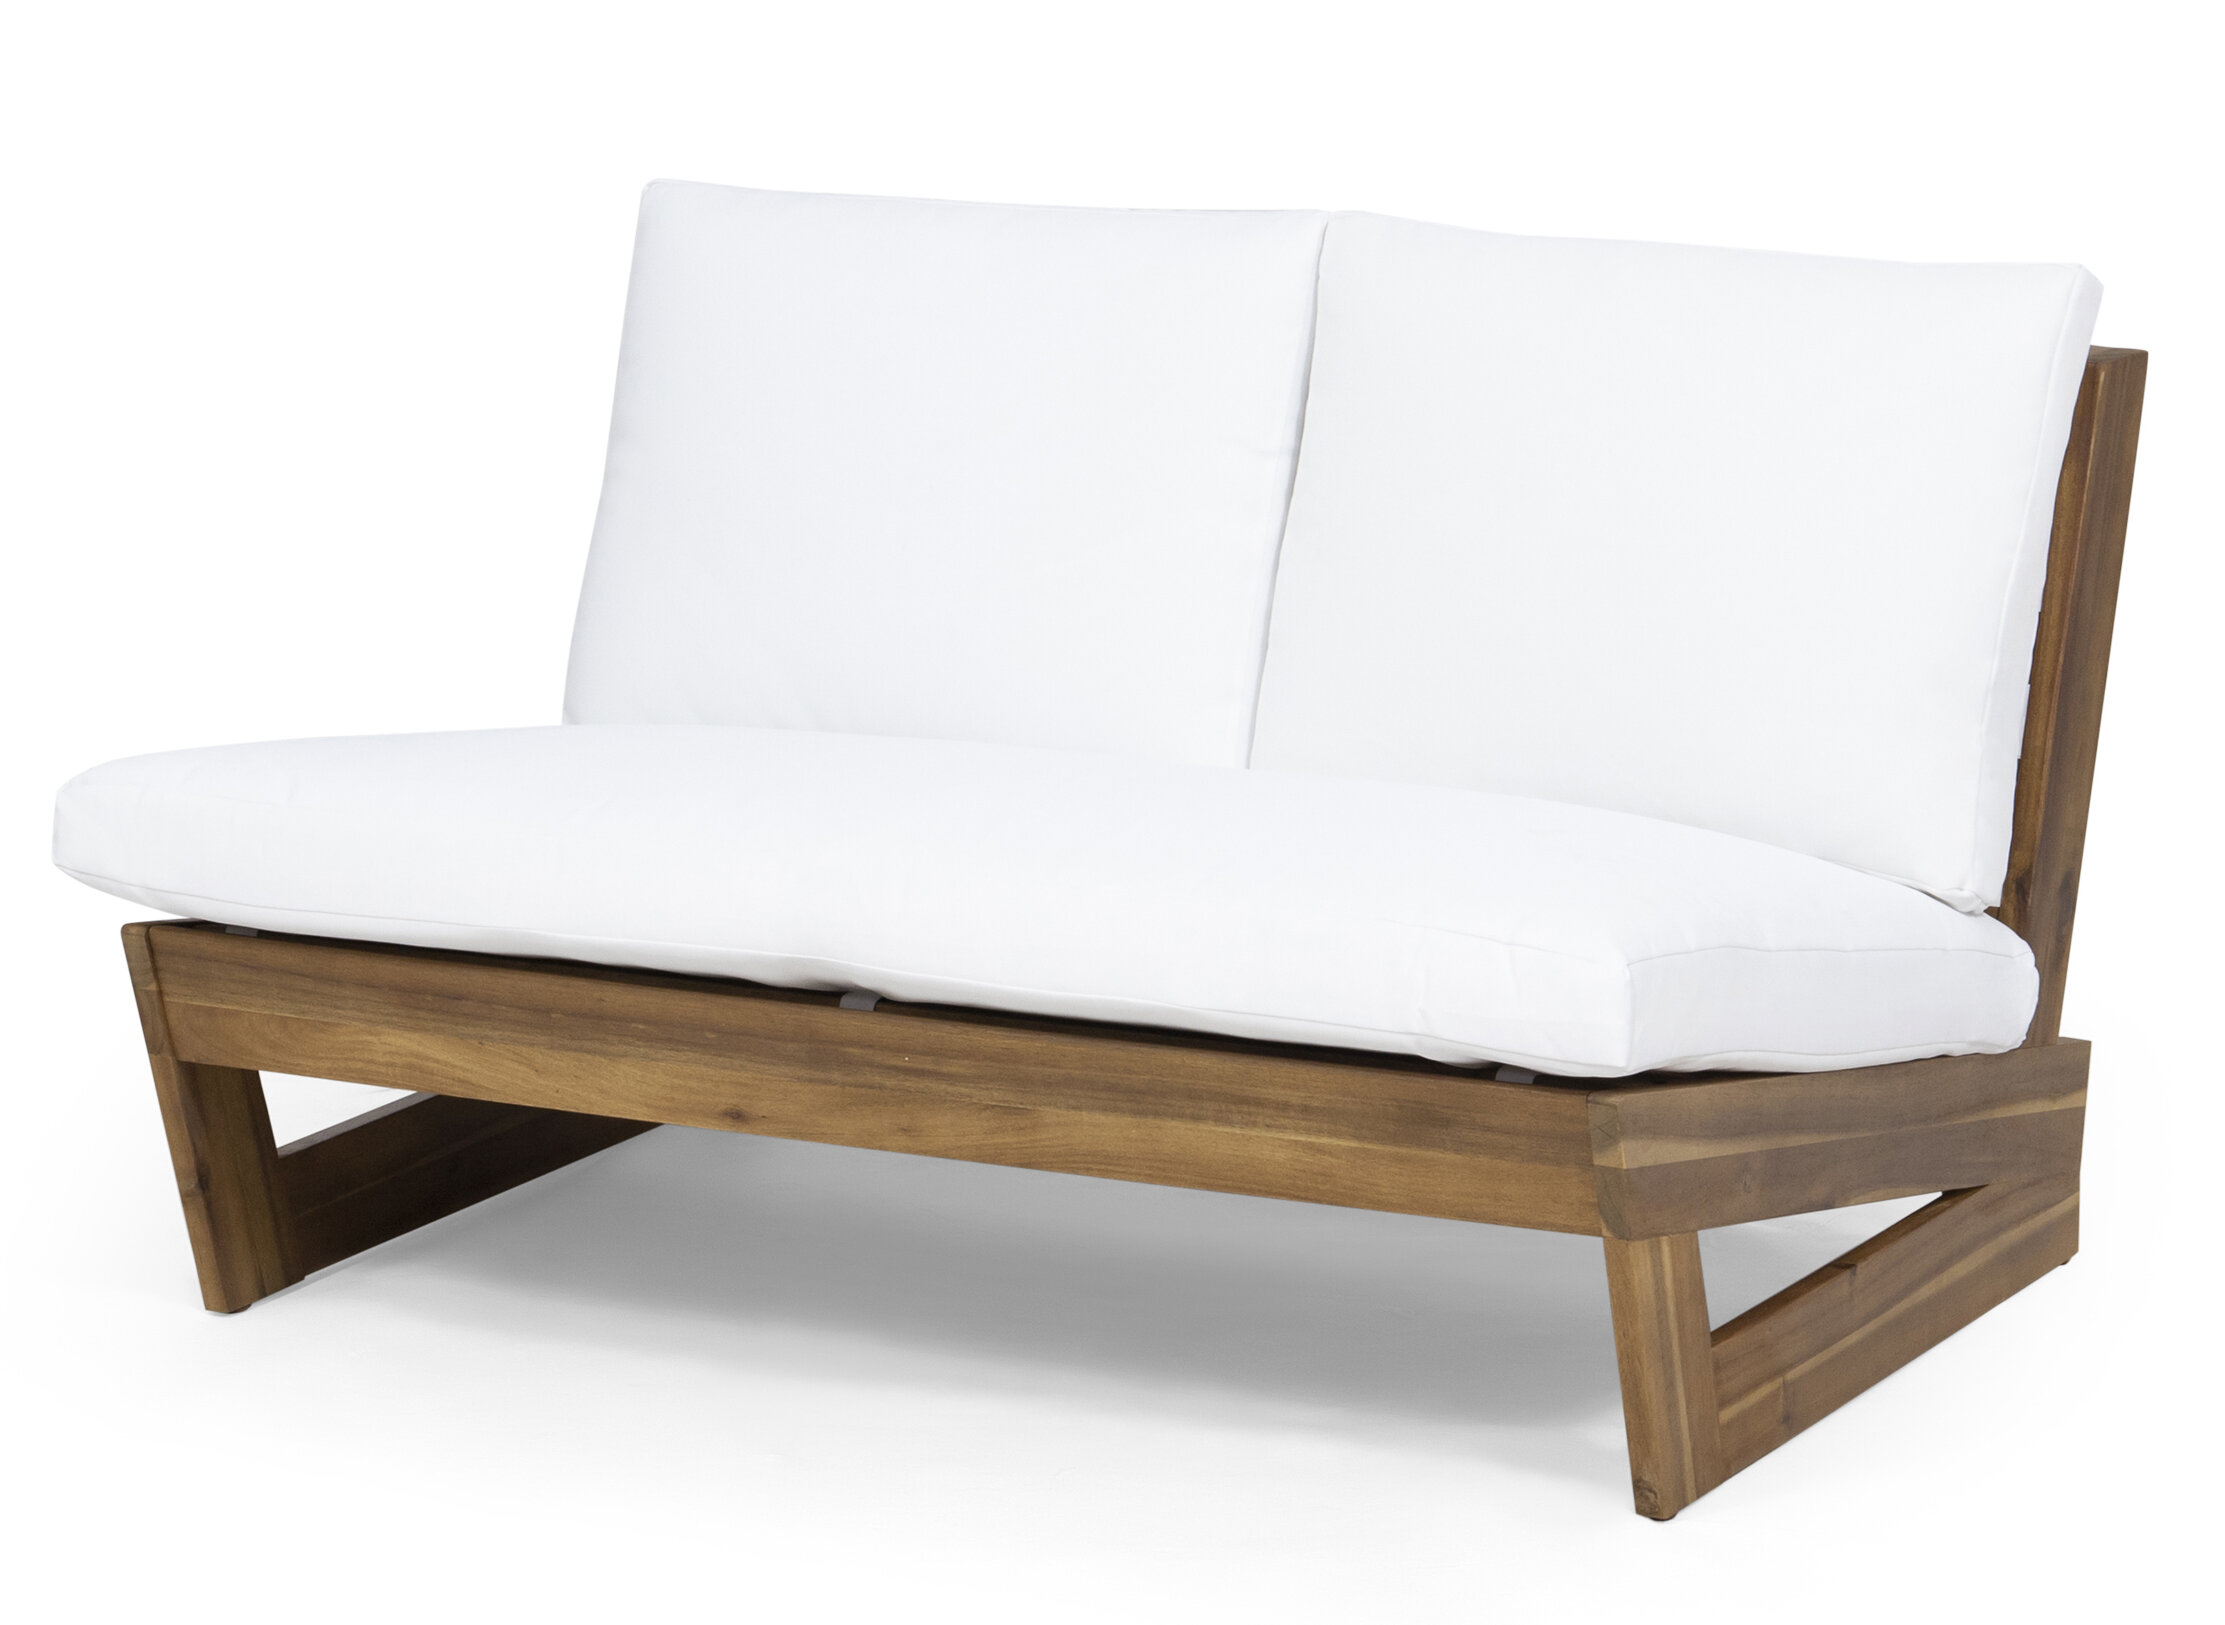 Fabulous Pekalongan Outdoor Loveseat With Cushions Ncnpc Chair Design For Home Ncnpcorg